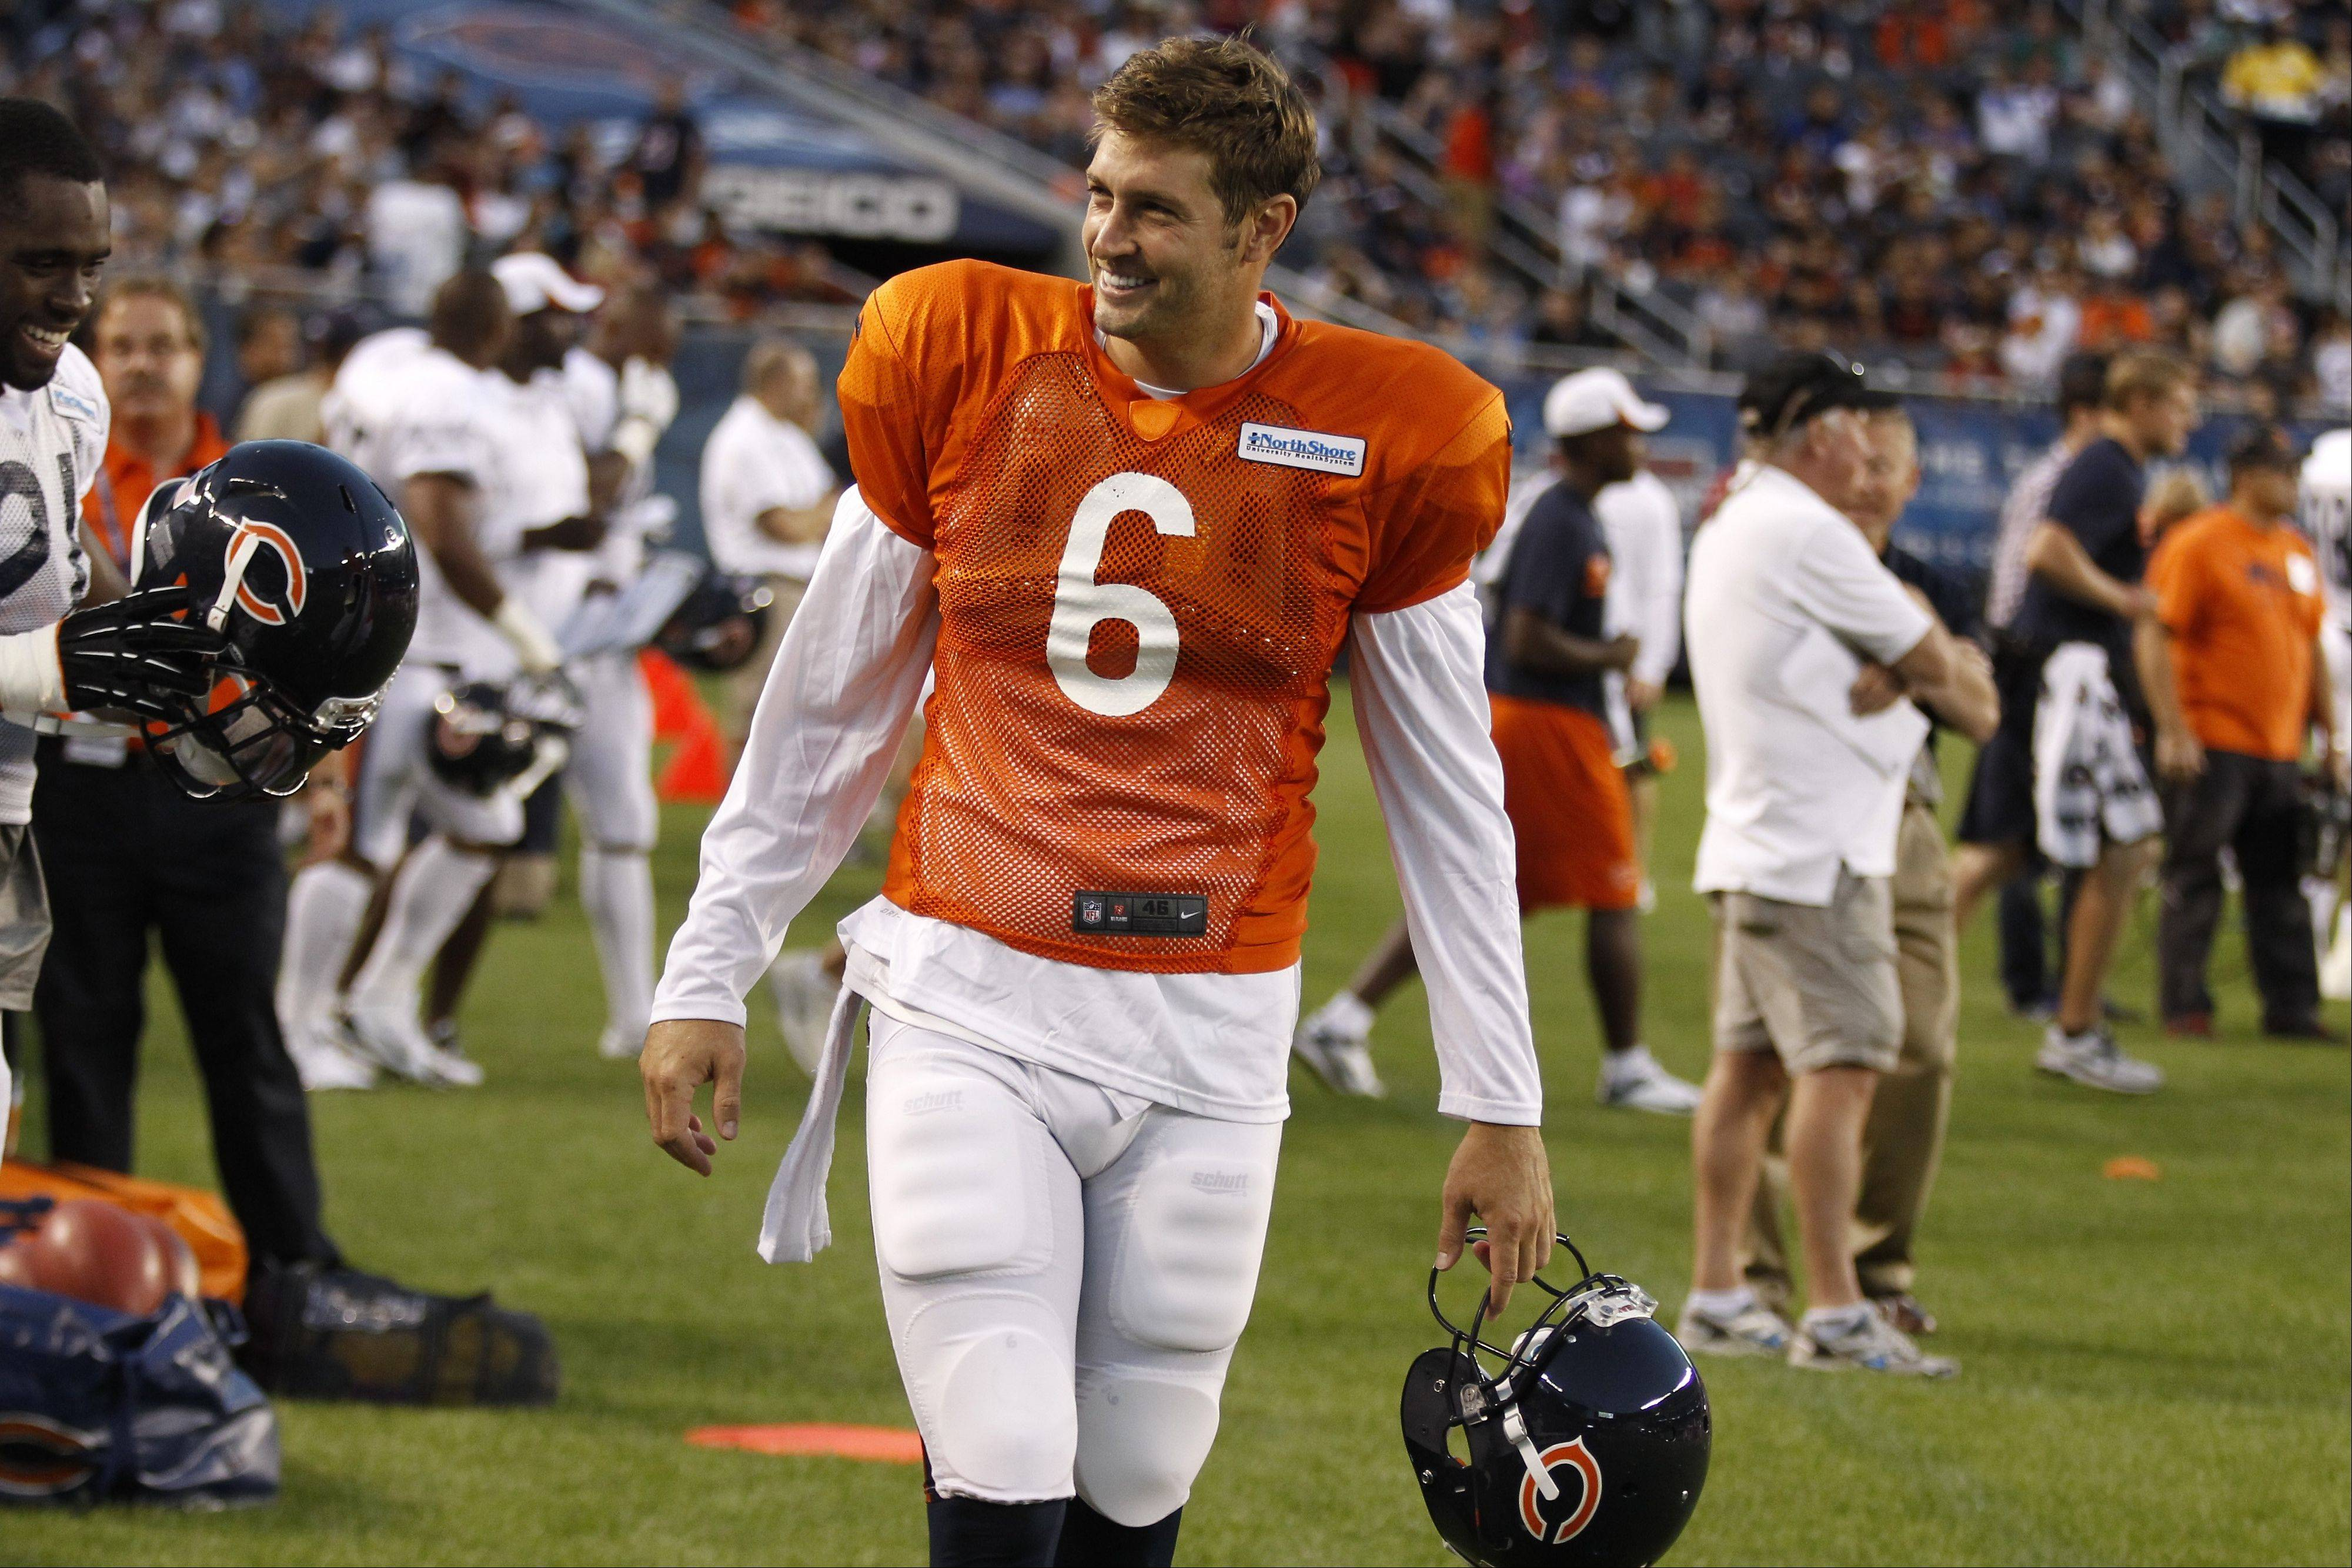 The biggest problem for Bears quarterback Jay Cutler this season could be keeping all of his receiving options involved and happy.